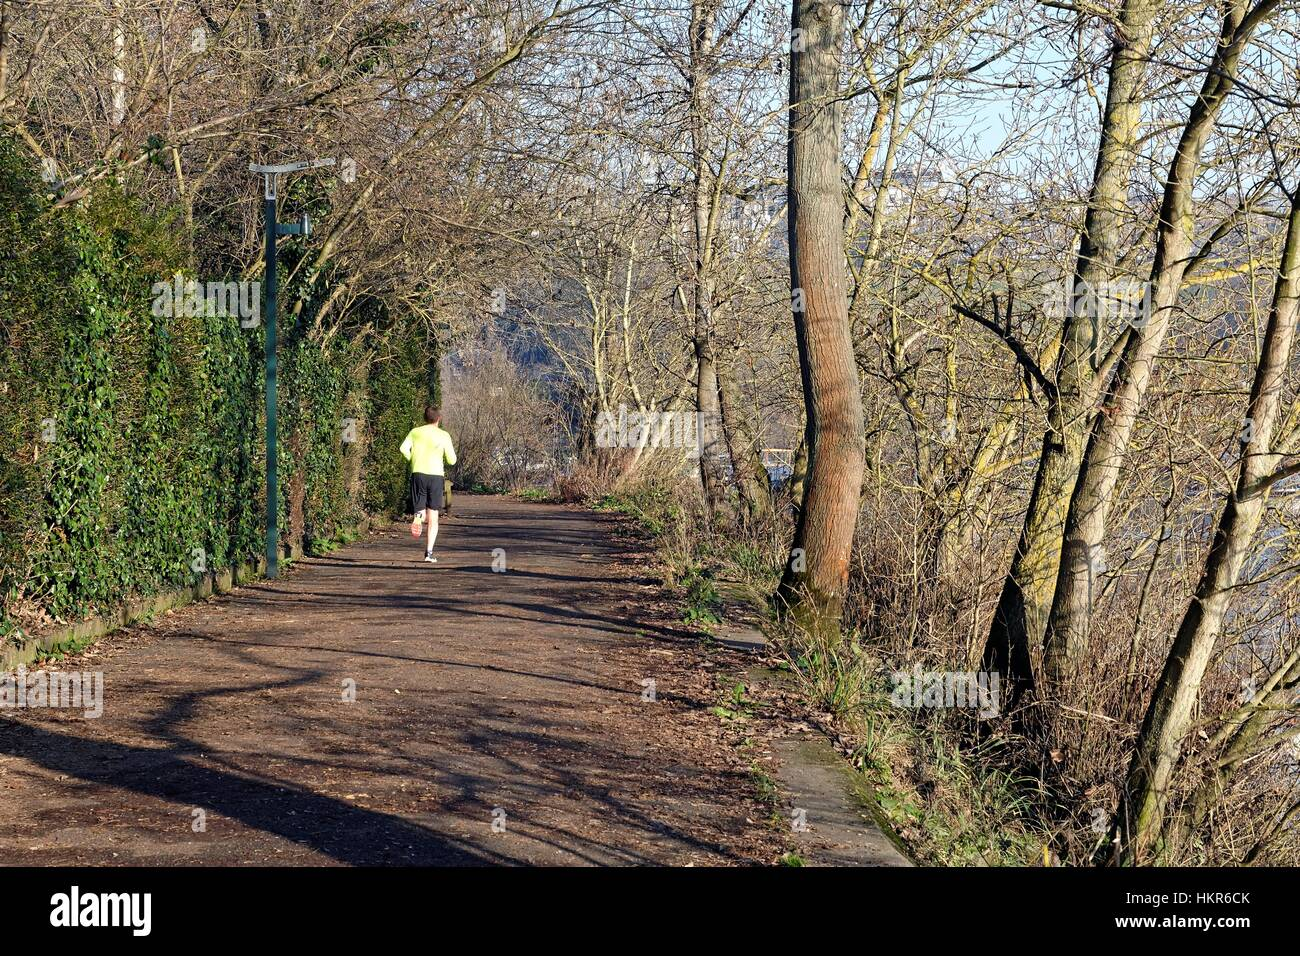 Runner on towpath at Richmond Surrey UK - Stock Image